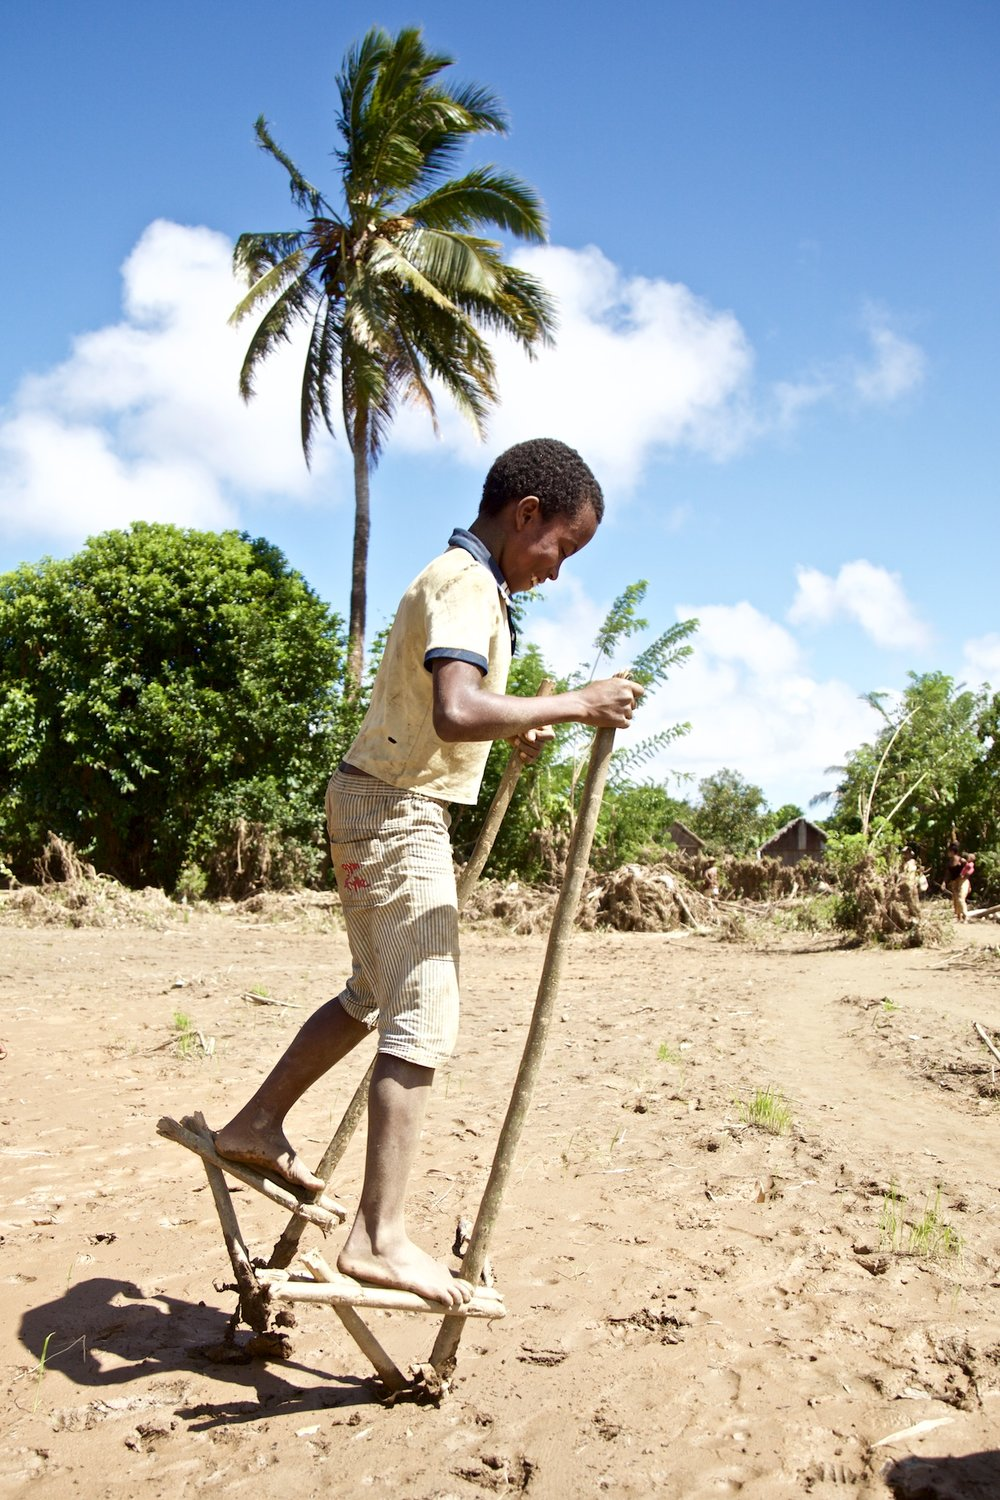 After the Floodwaters Receded, The Thick Mud Presents a New Opportunity for Local Kids